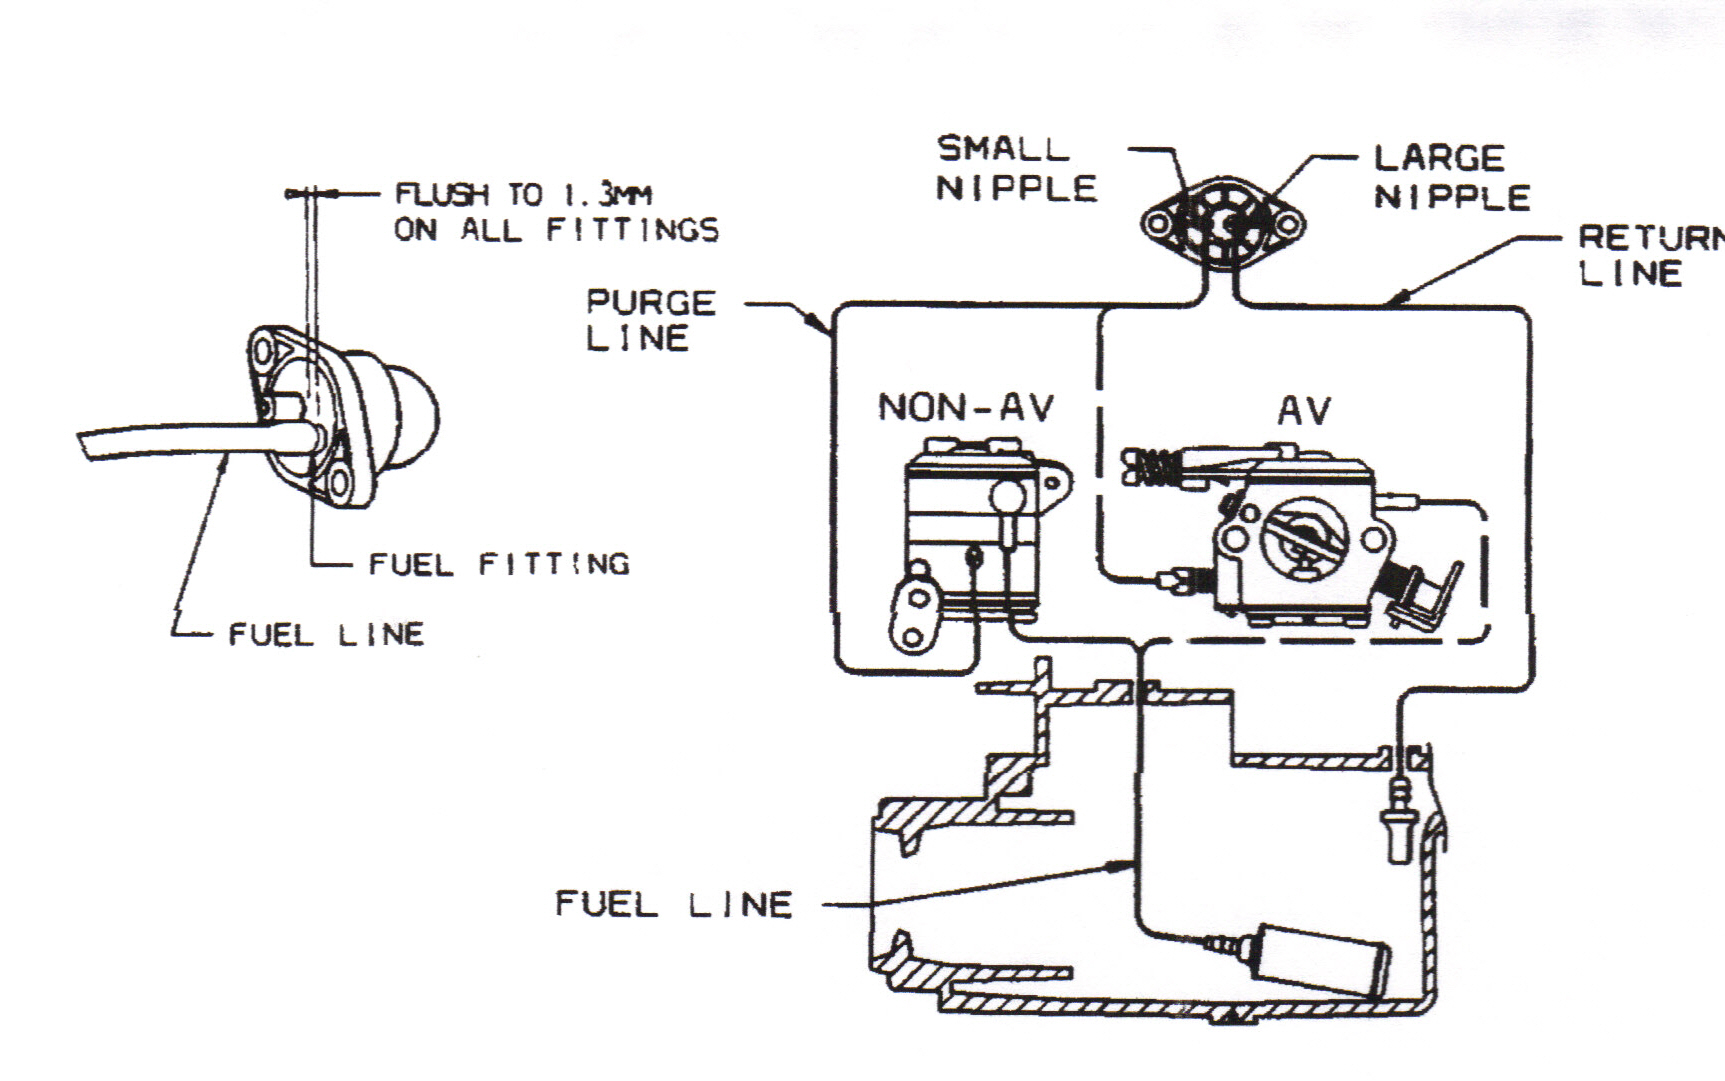 Small Engine Briggs And Stratton Parts Diagram.Briggs Stratton Engine Diagram Chainsaw Machine Repair Manual